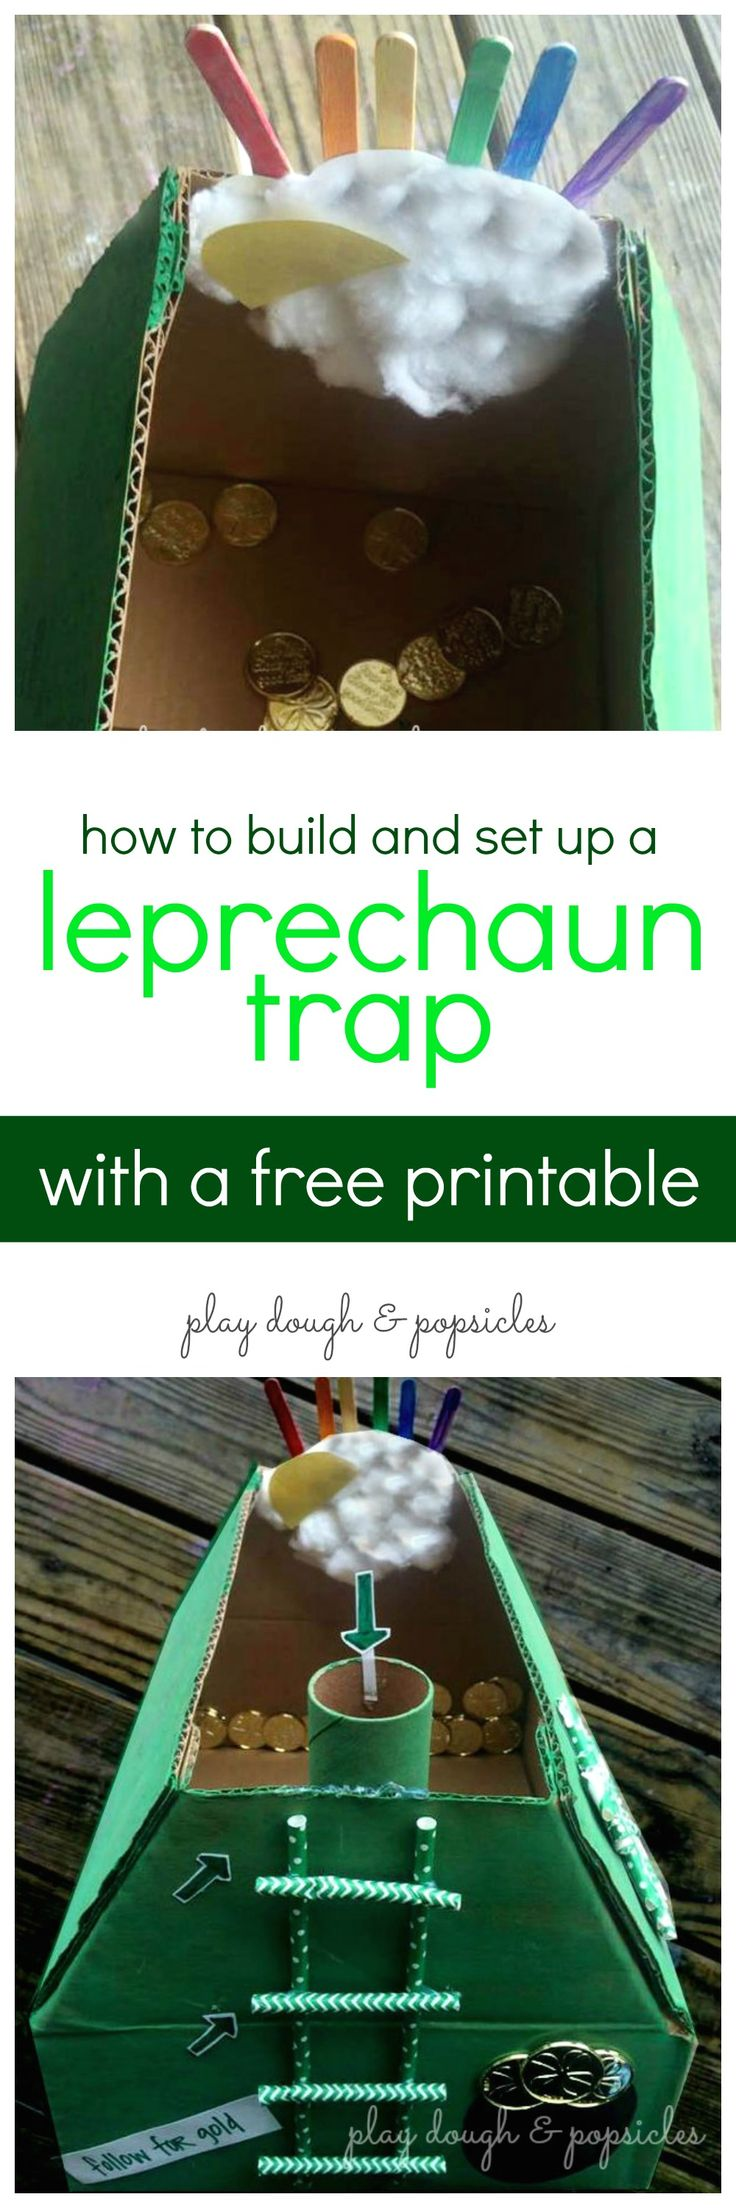 How To Build A Leprechaun Trap with Letter From The Leprechaun. St. Patrick's Day Craft for Kids!